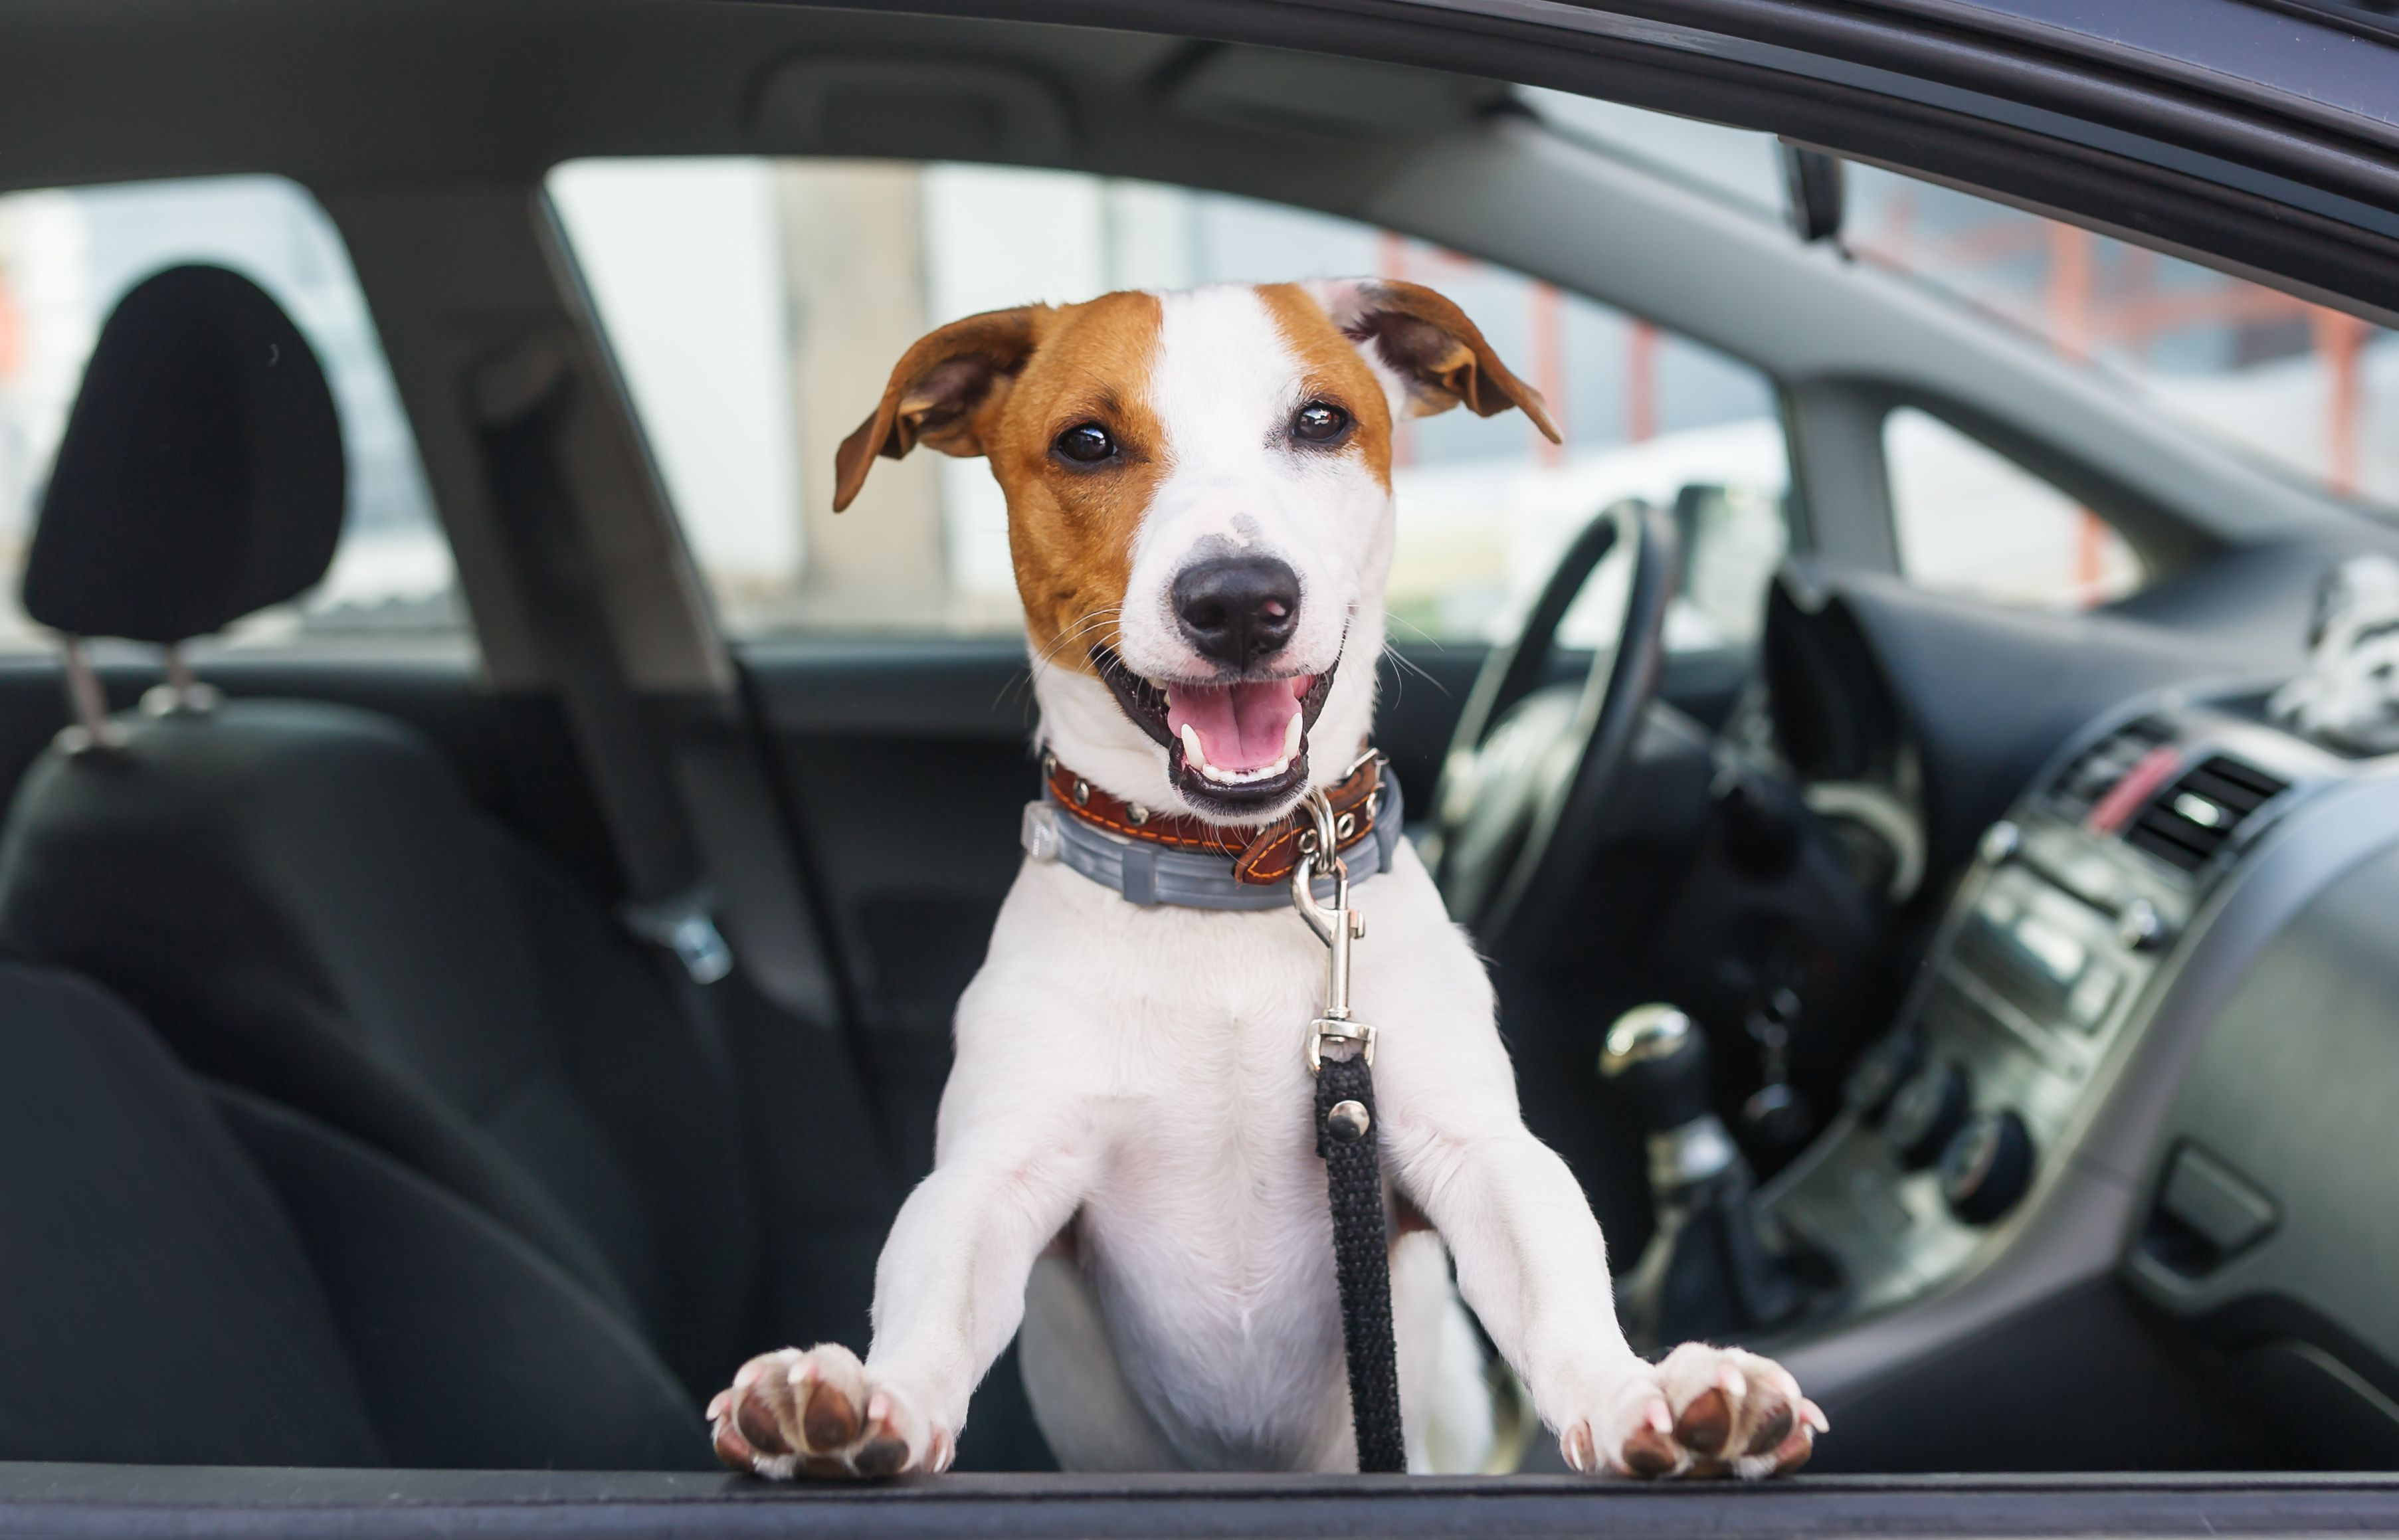 'Uber for dogs' startup aims to make pet travel easier